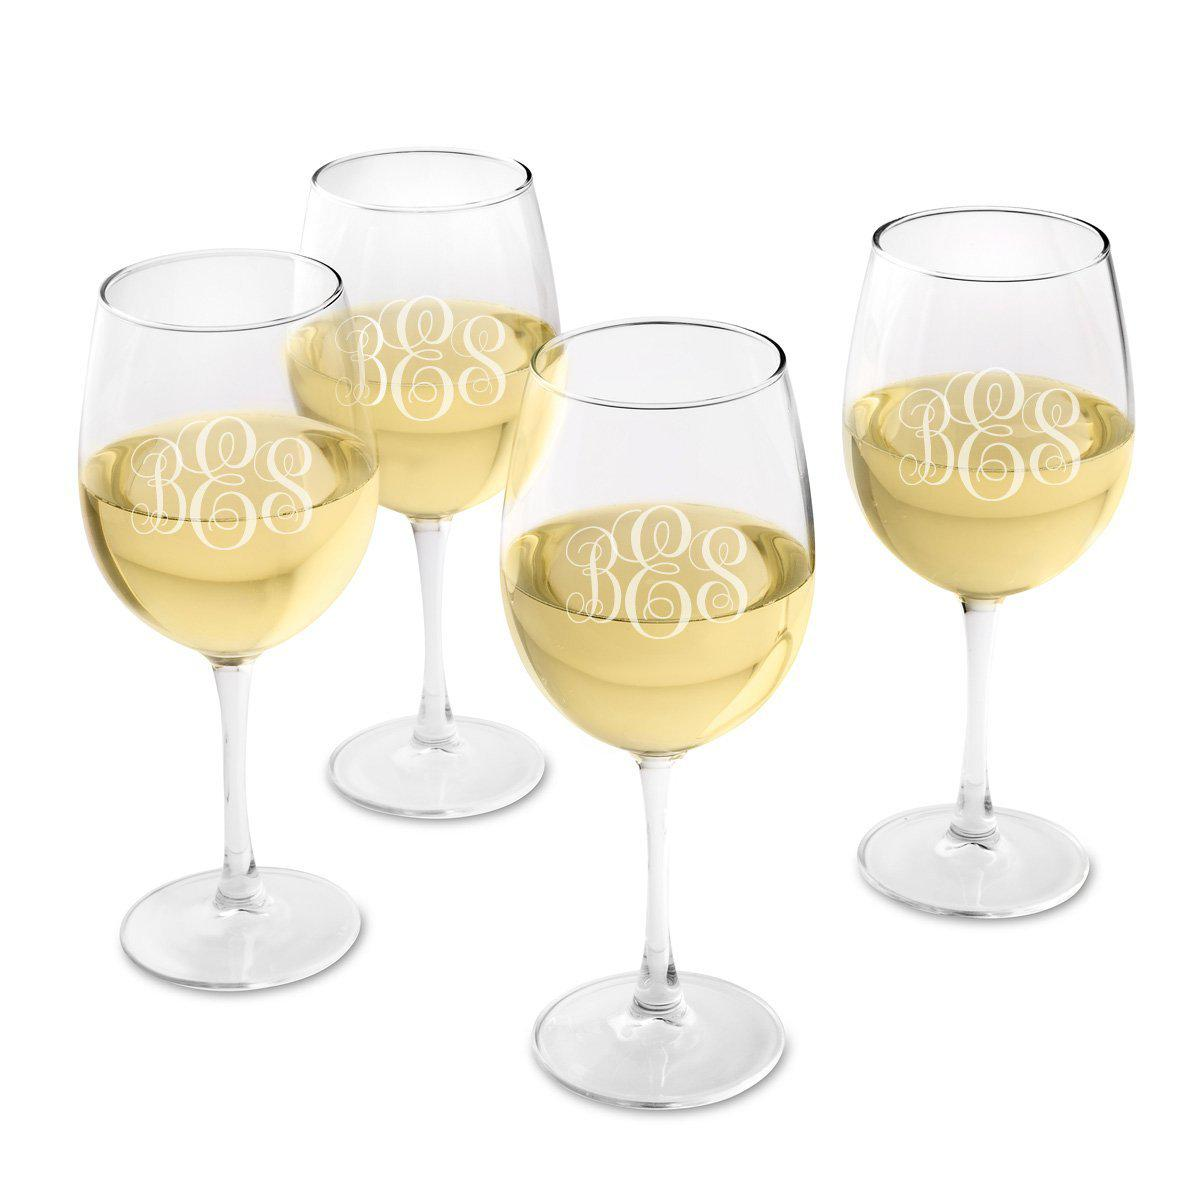 Personalized Set of 4 White Wine Glasses